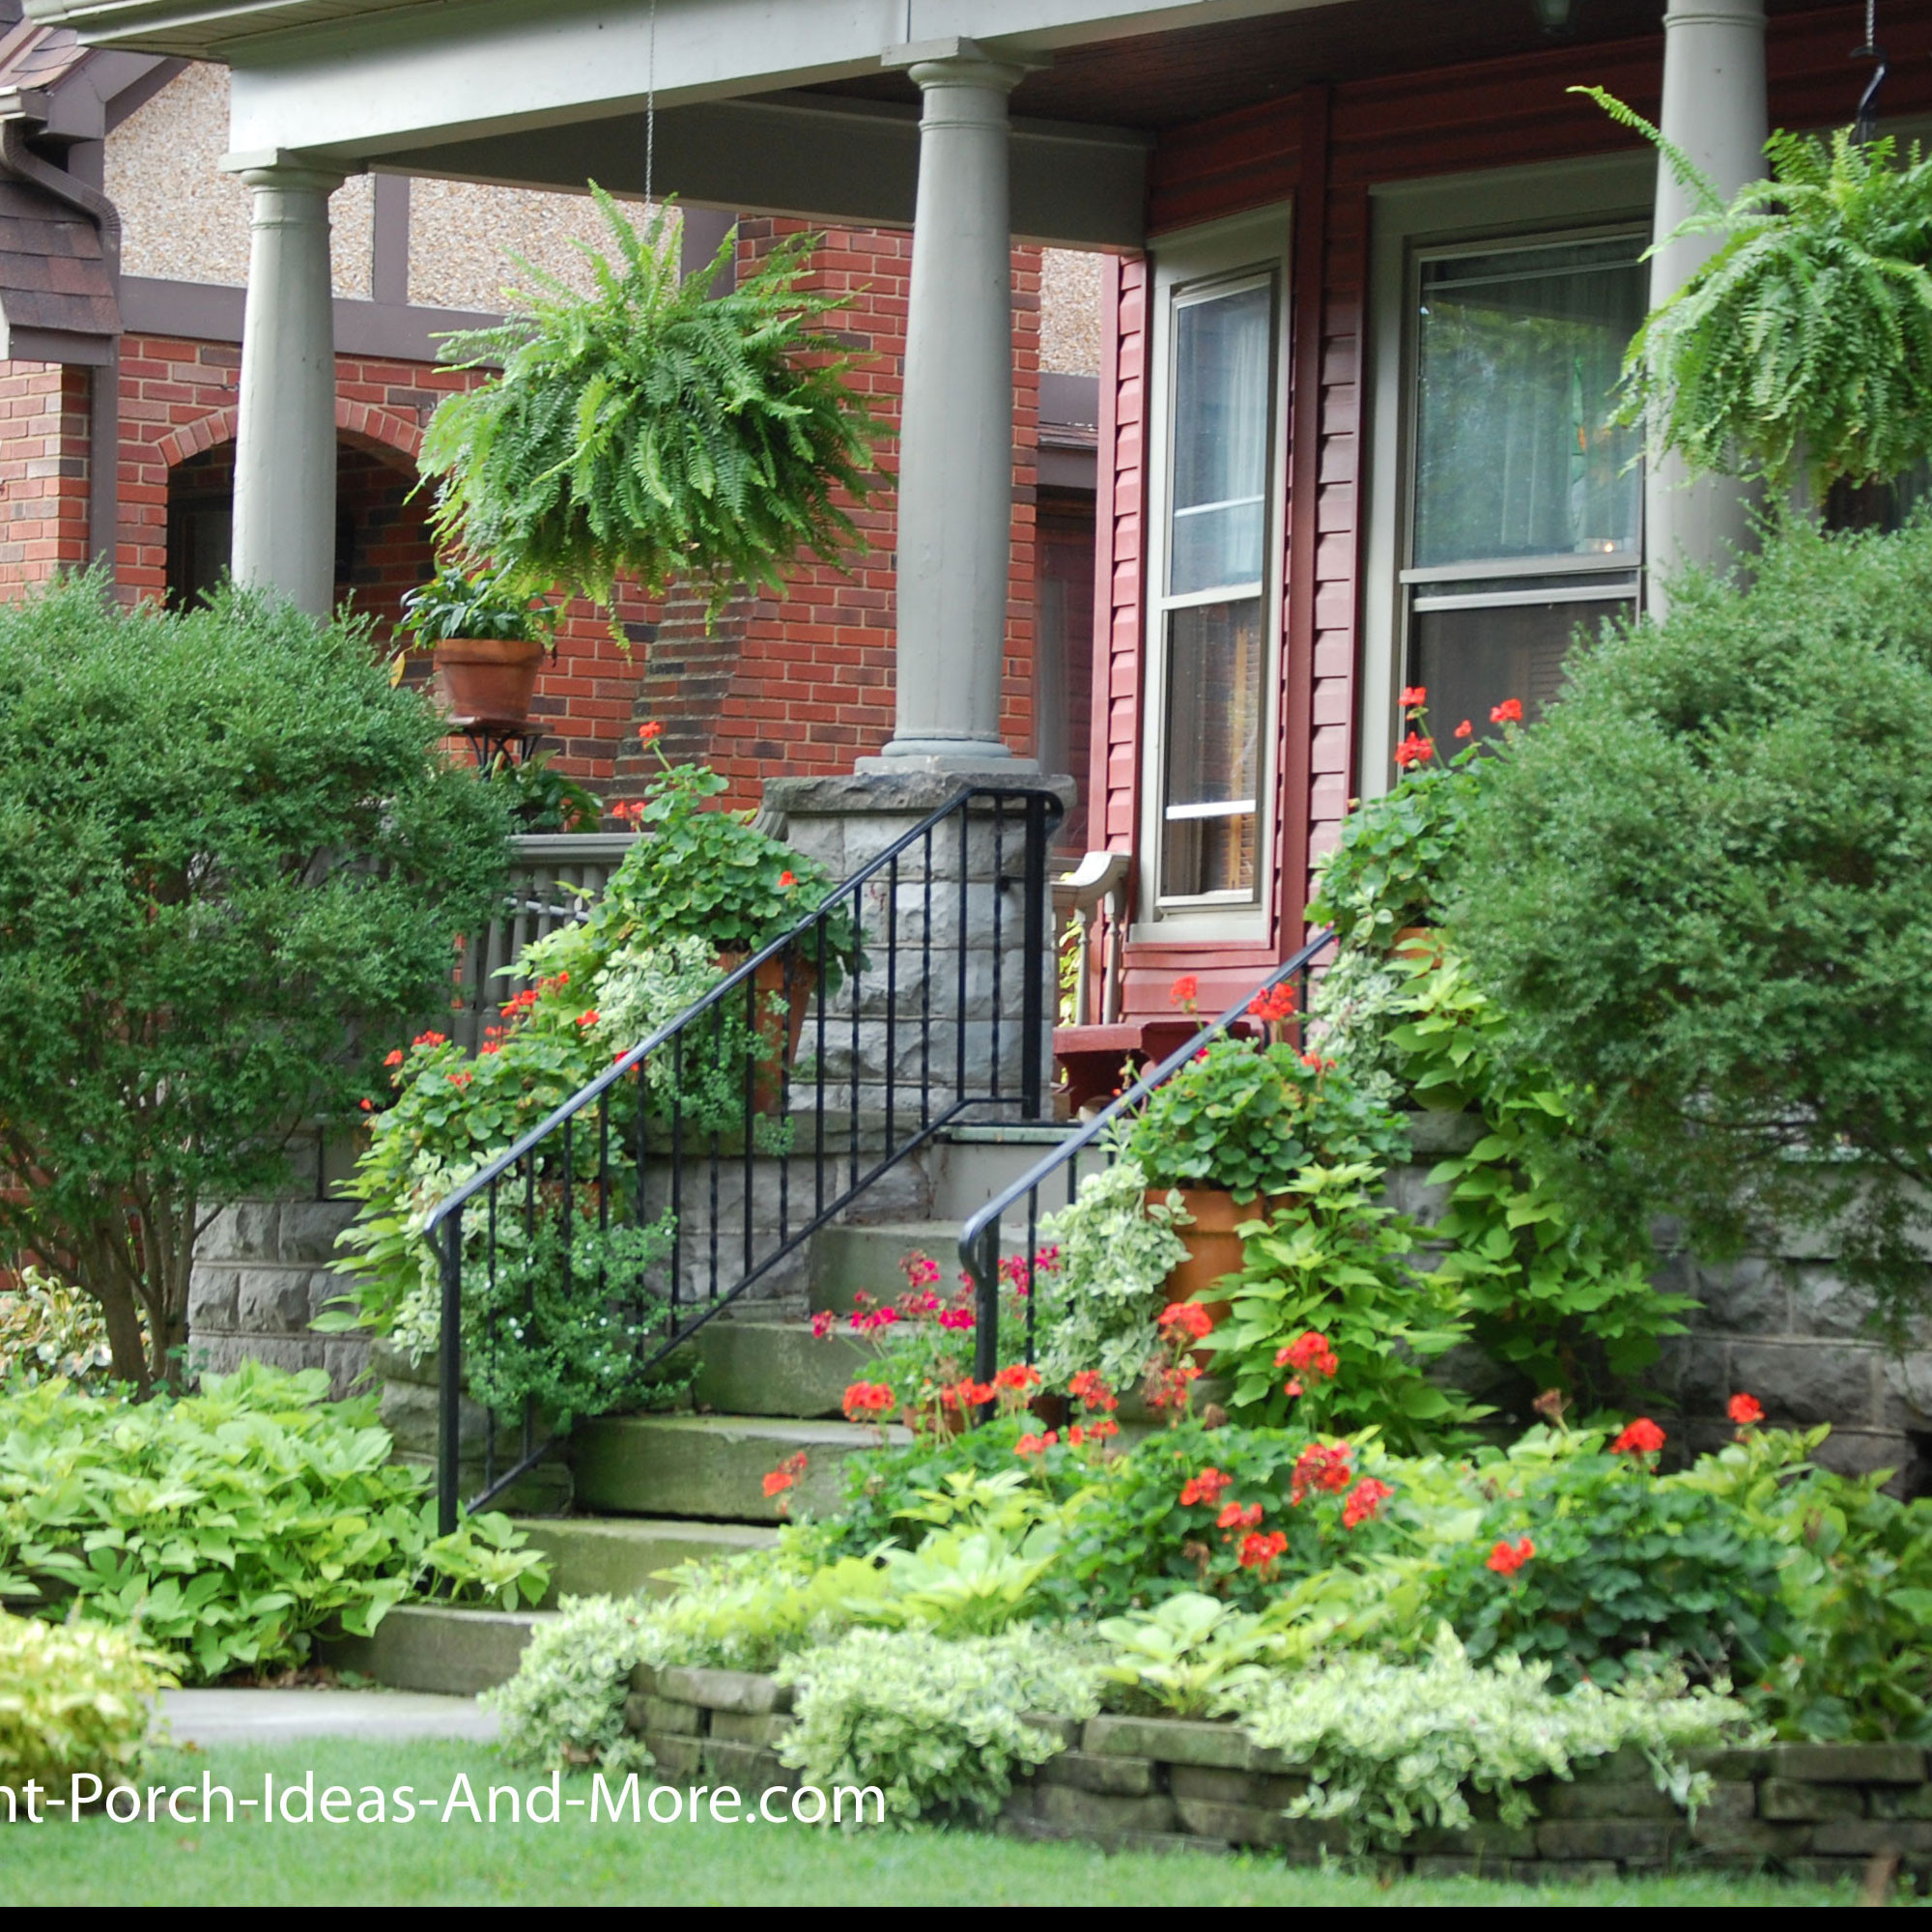 Front Porch Landscape Ideas  Porch Landscaping Ideas for Your Front Yard and More